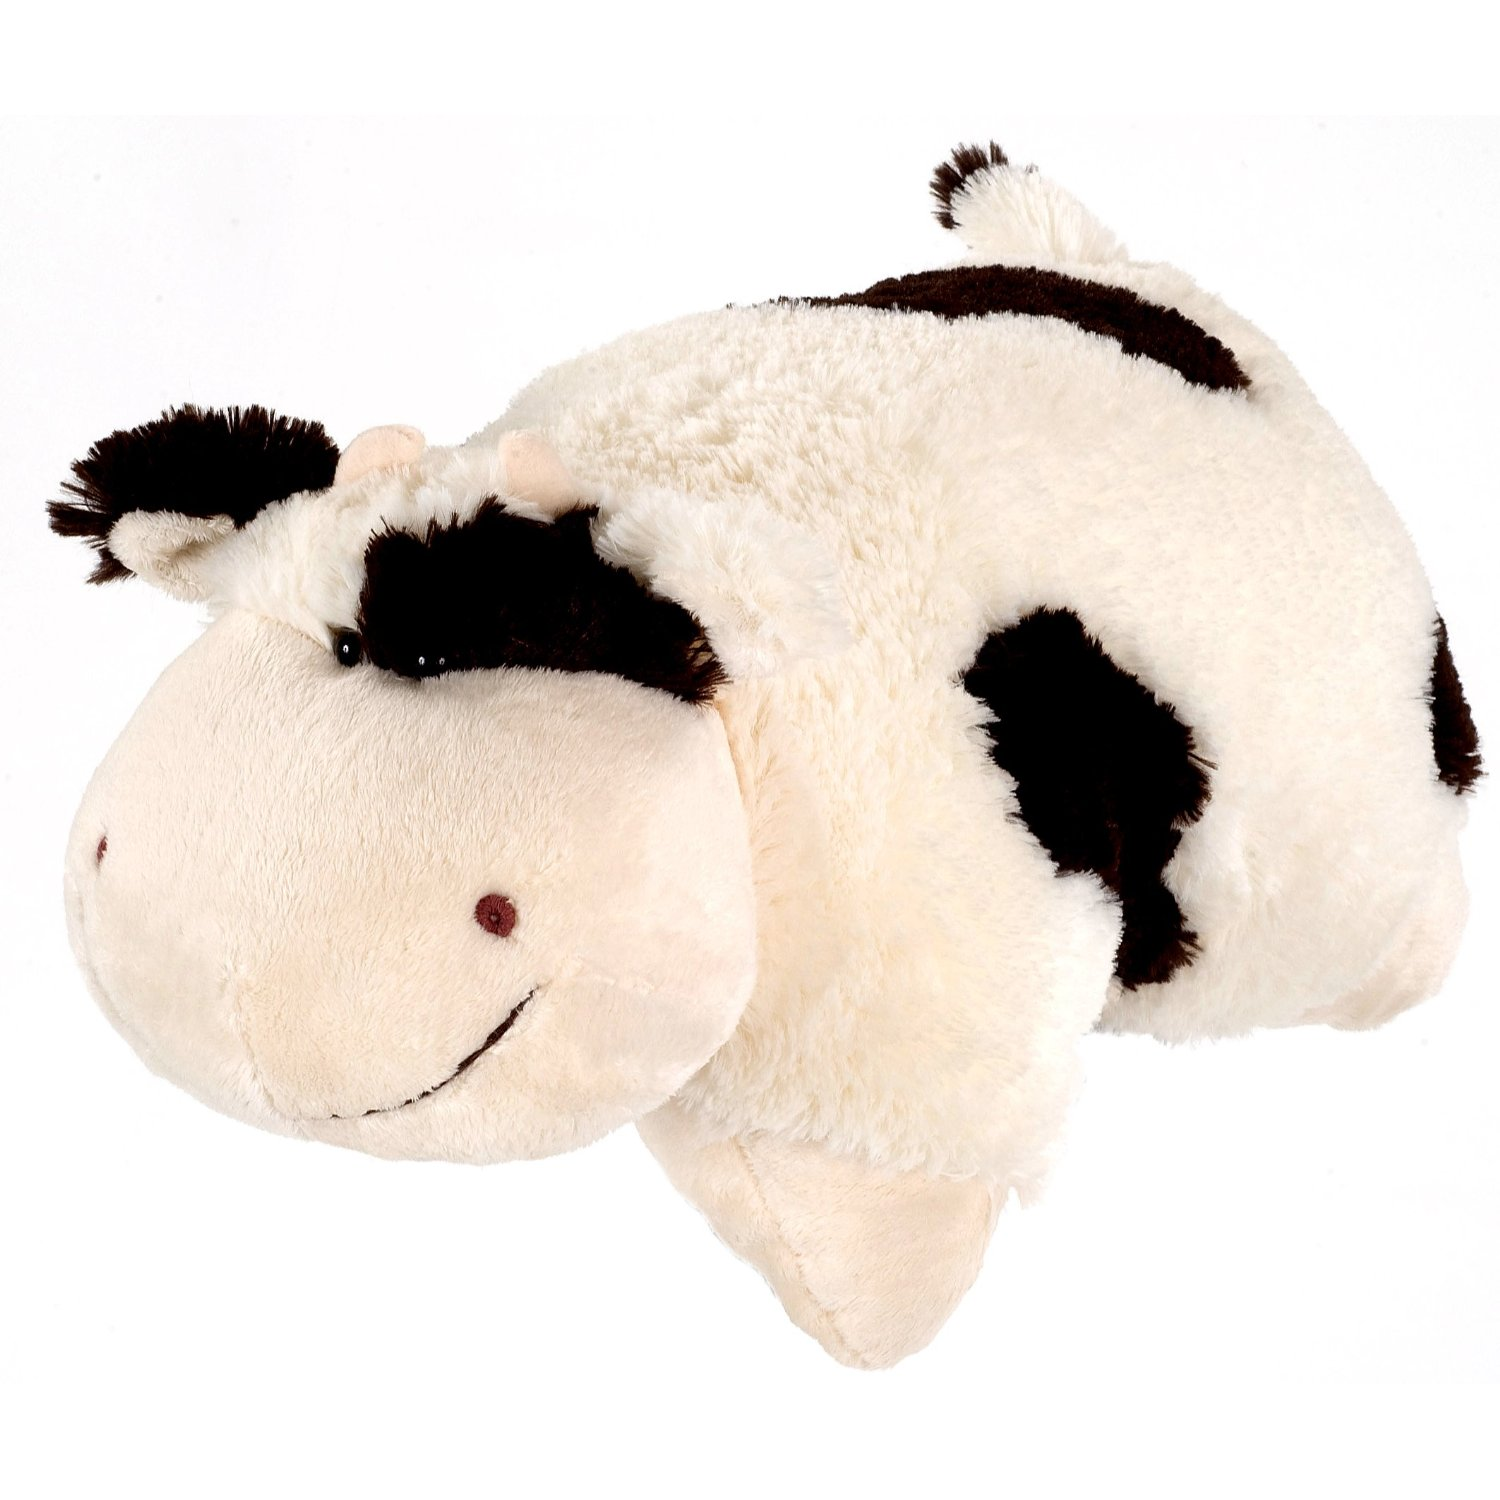 Check out the cow logo on My Pillow Pets pillows  Every